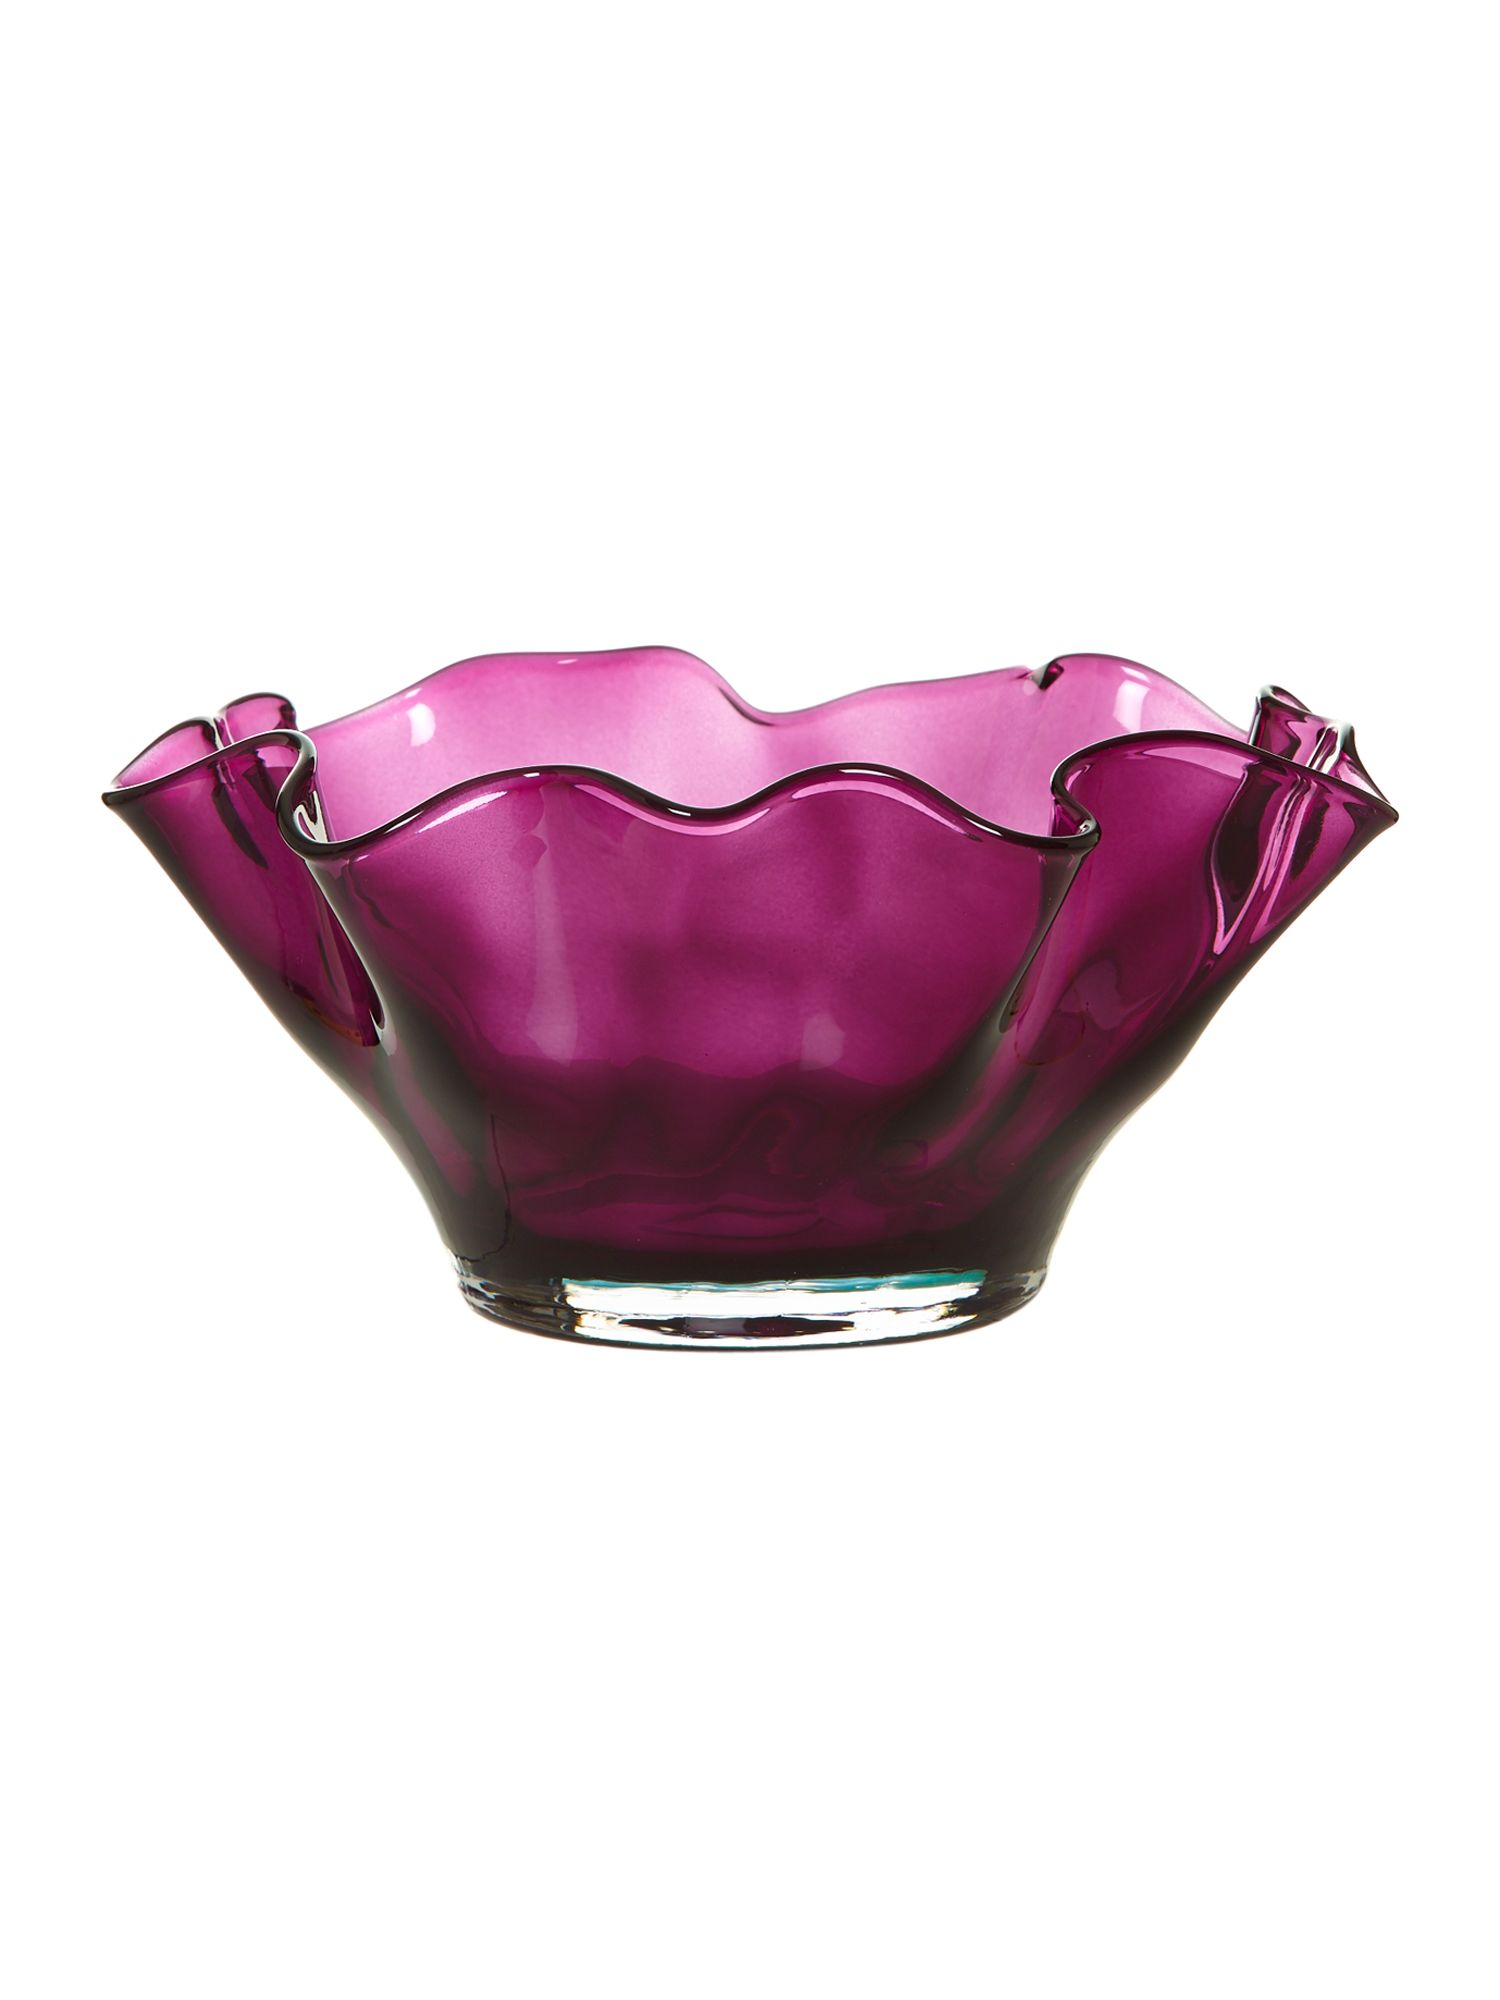 Optic handkerchief bowl, plum